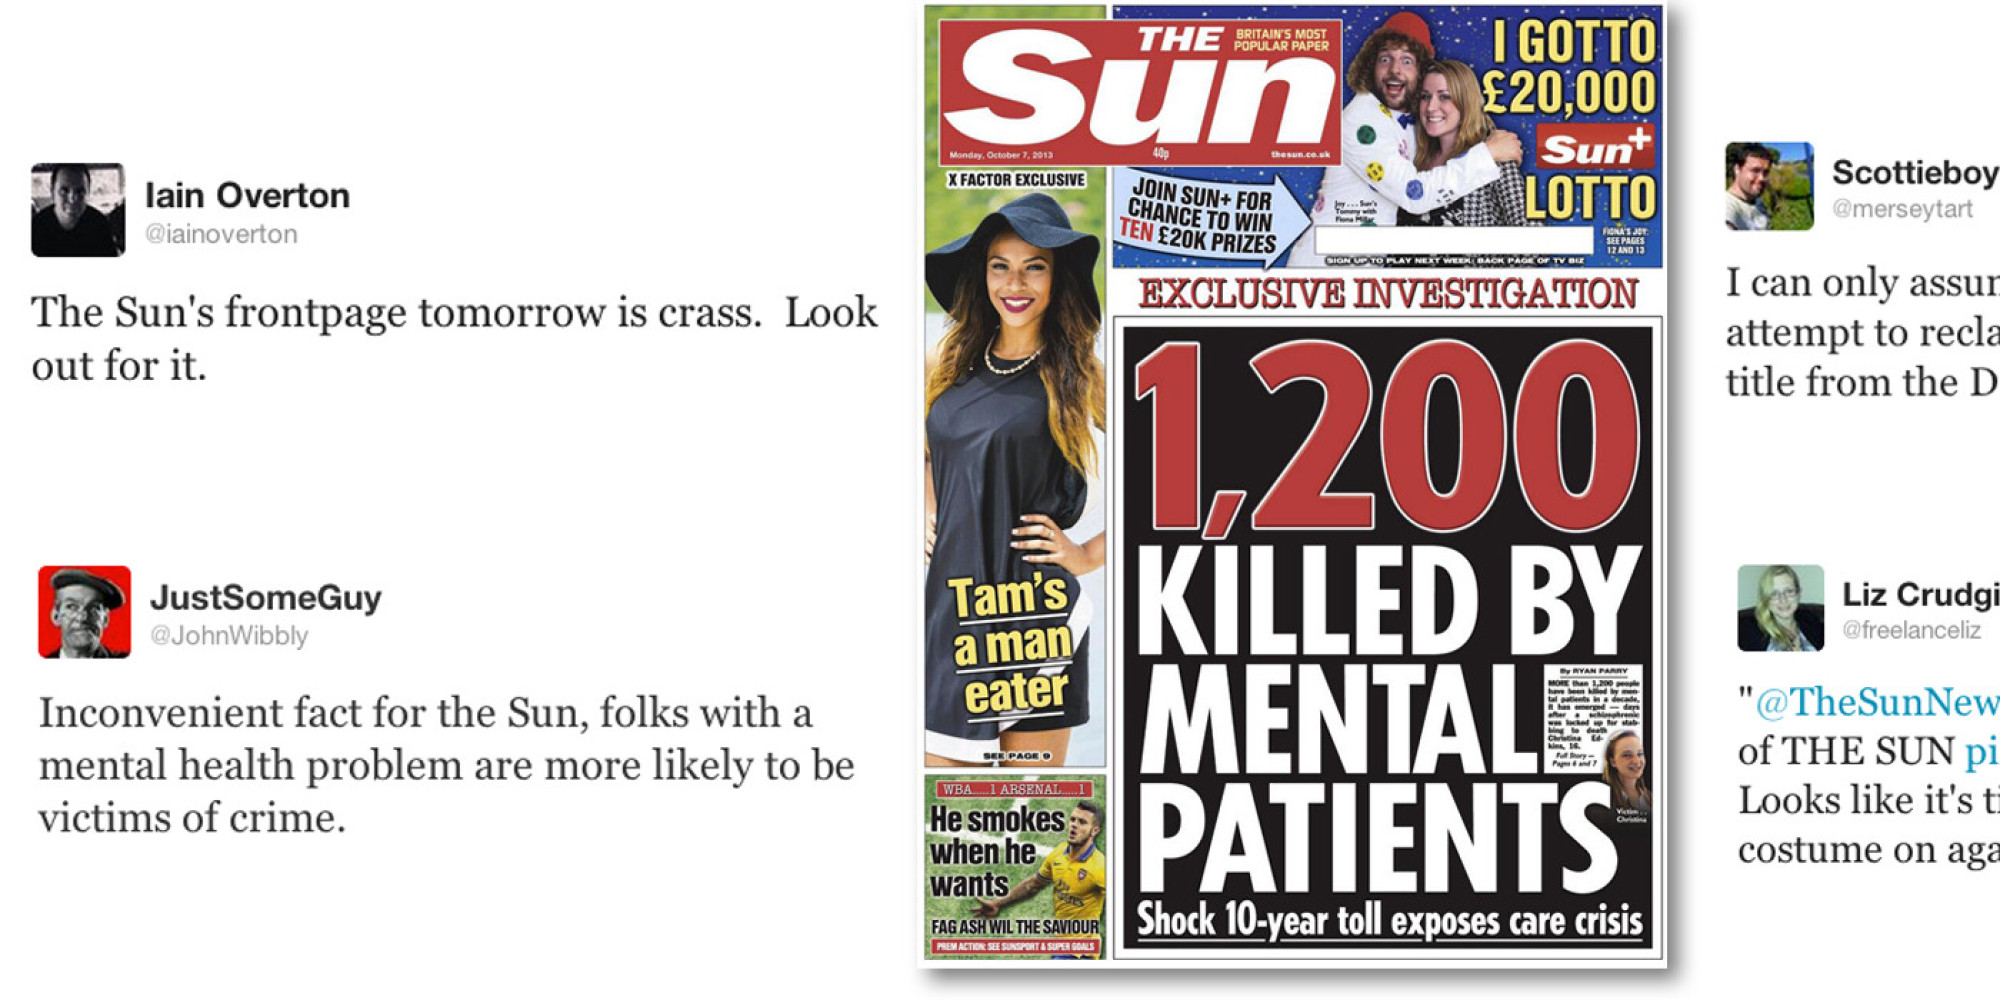 the sun front page angers mental health campaigners